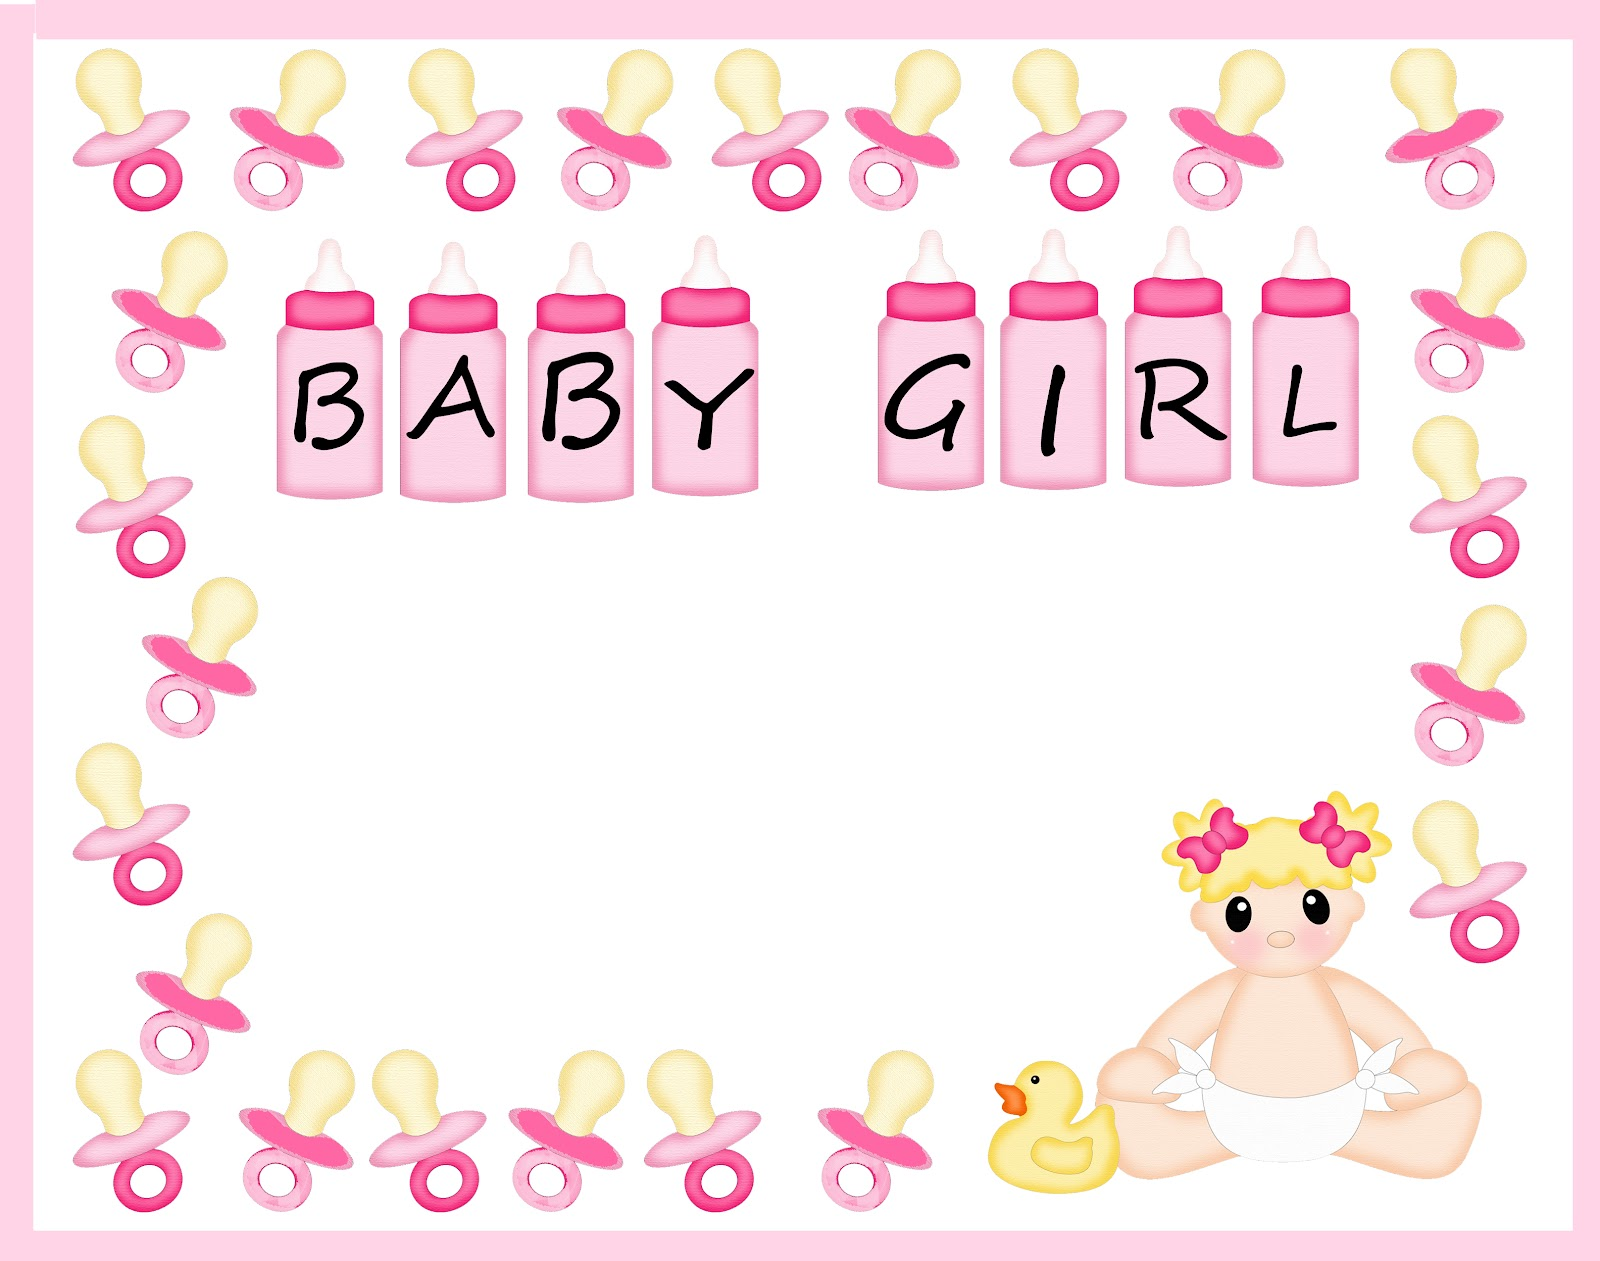 Baby girl clipart border picture freeuse library Free Baby Shower Border Templates - Cliparts.co picture freeuse library